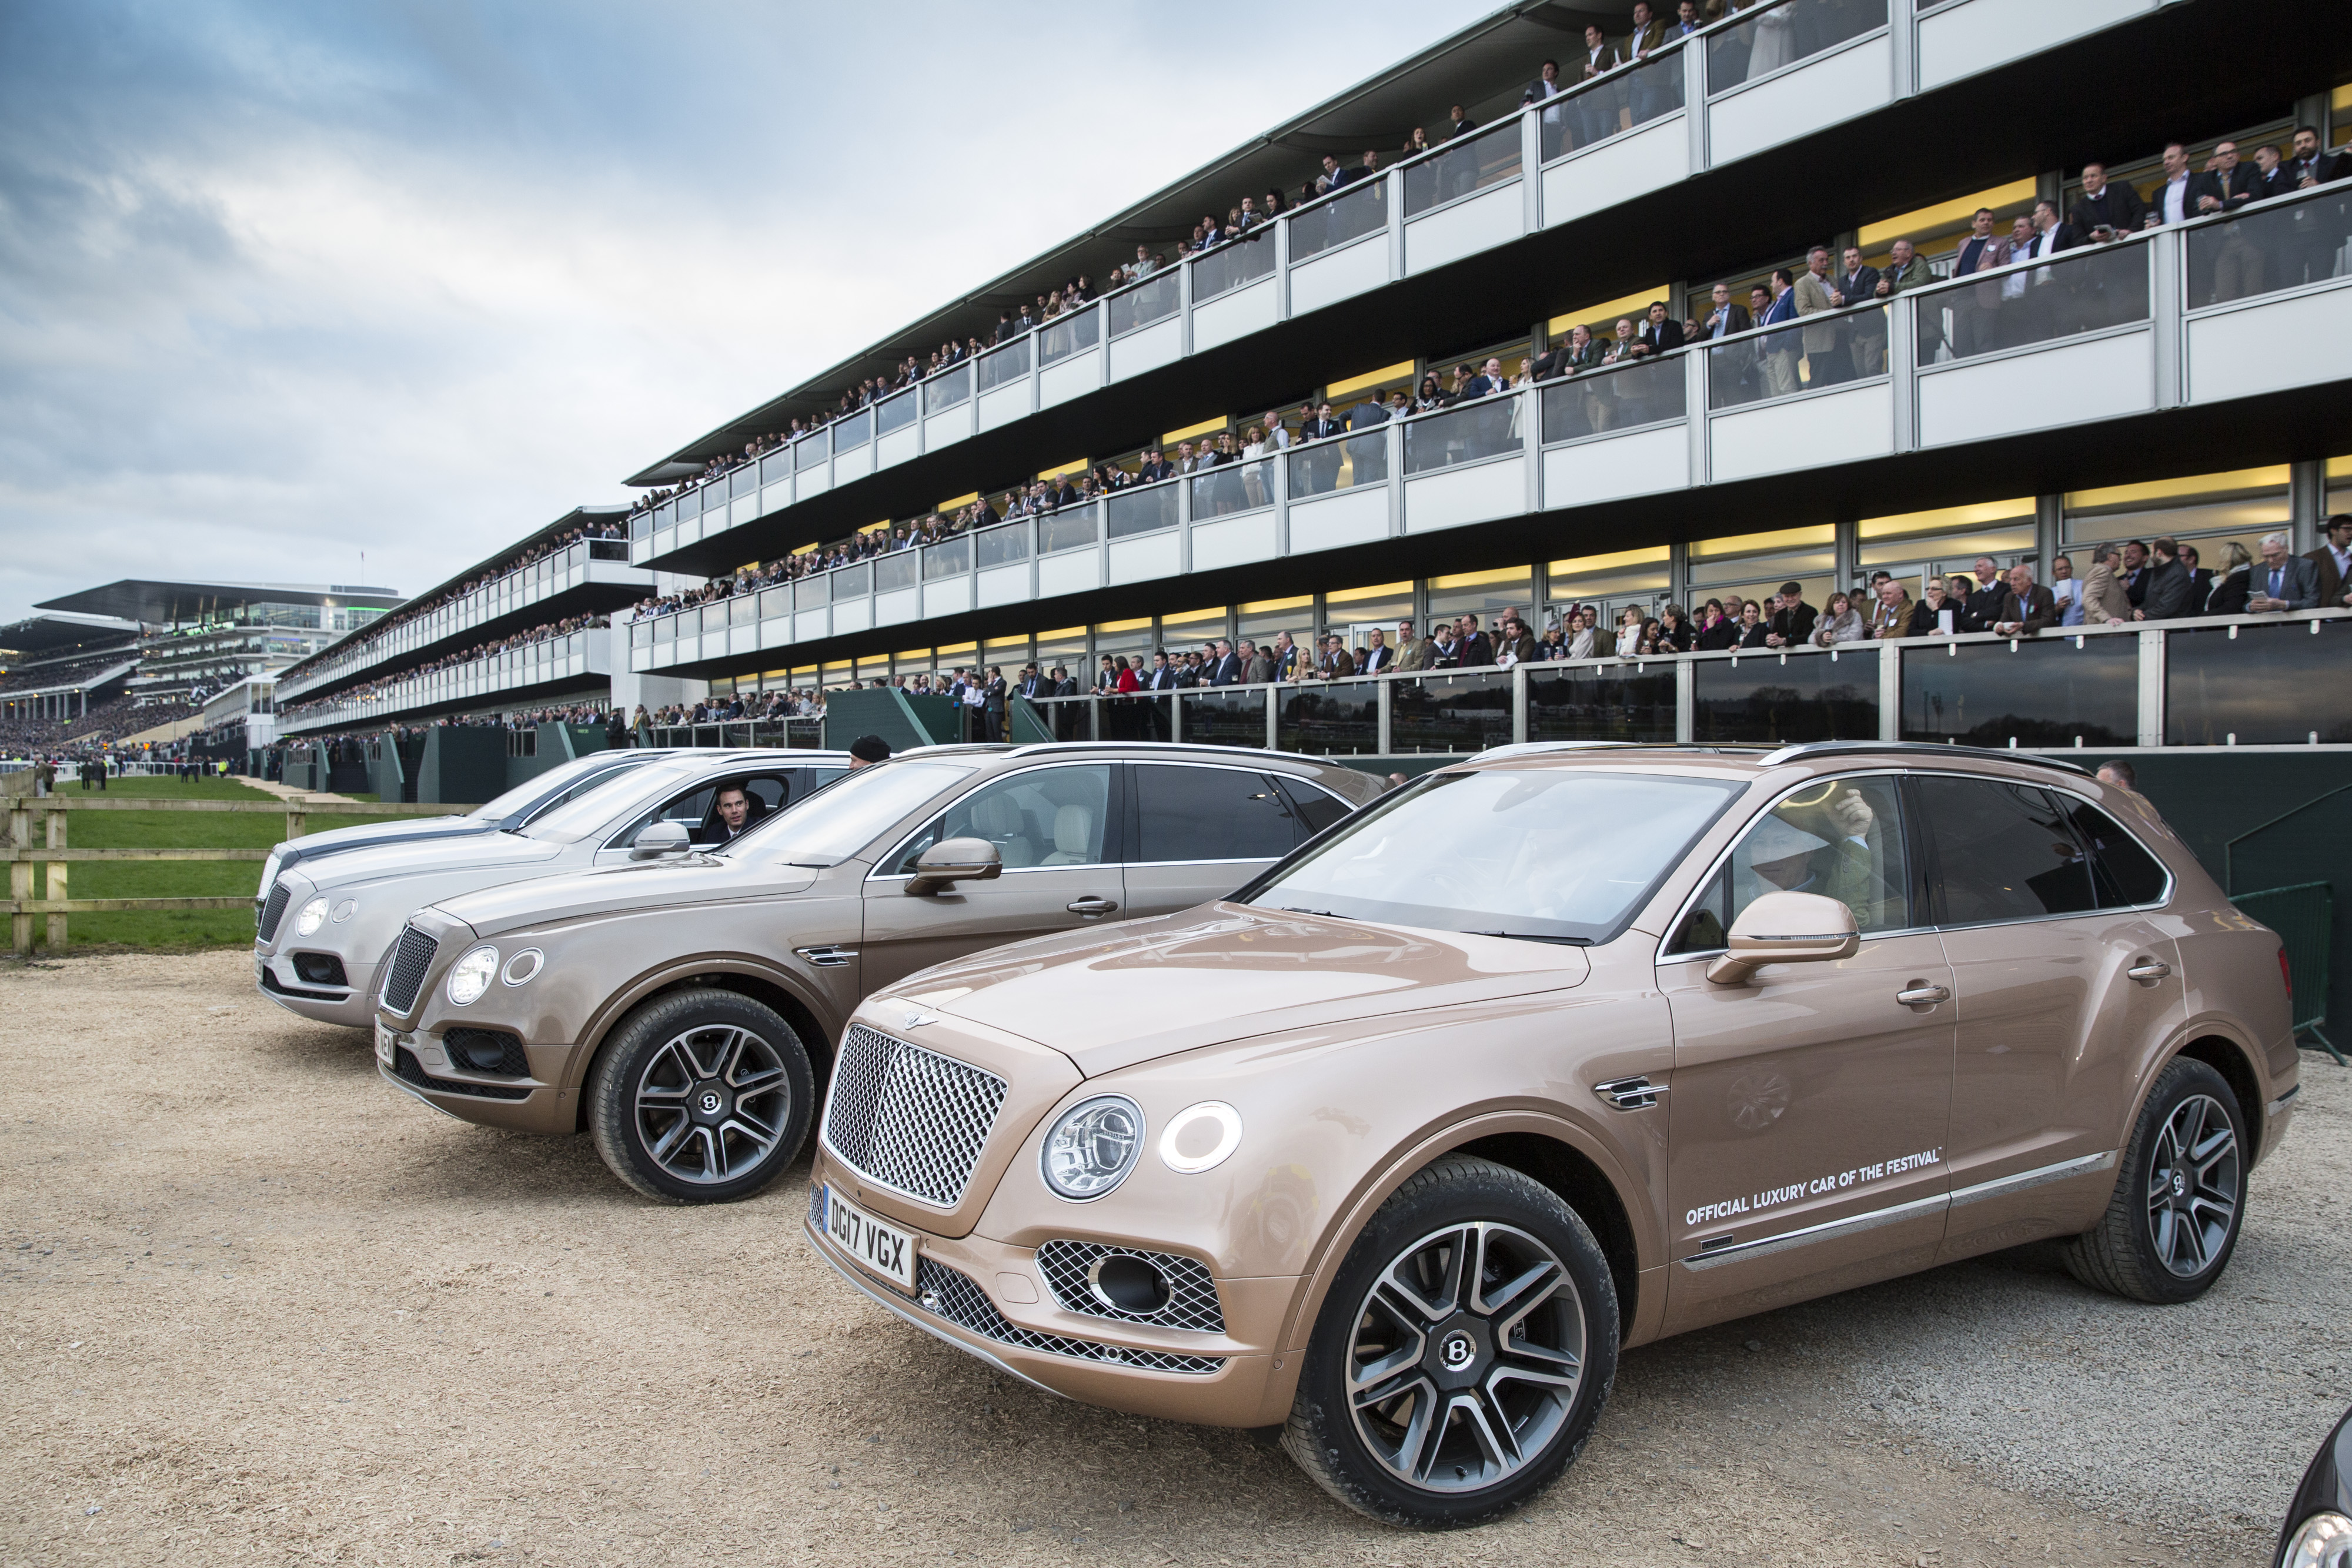 Bentley Cheltenham Festival Luxury Races VIP